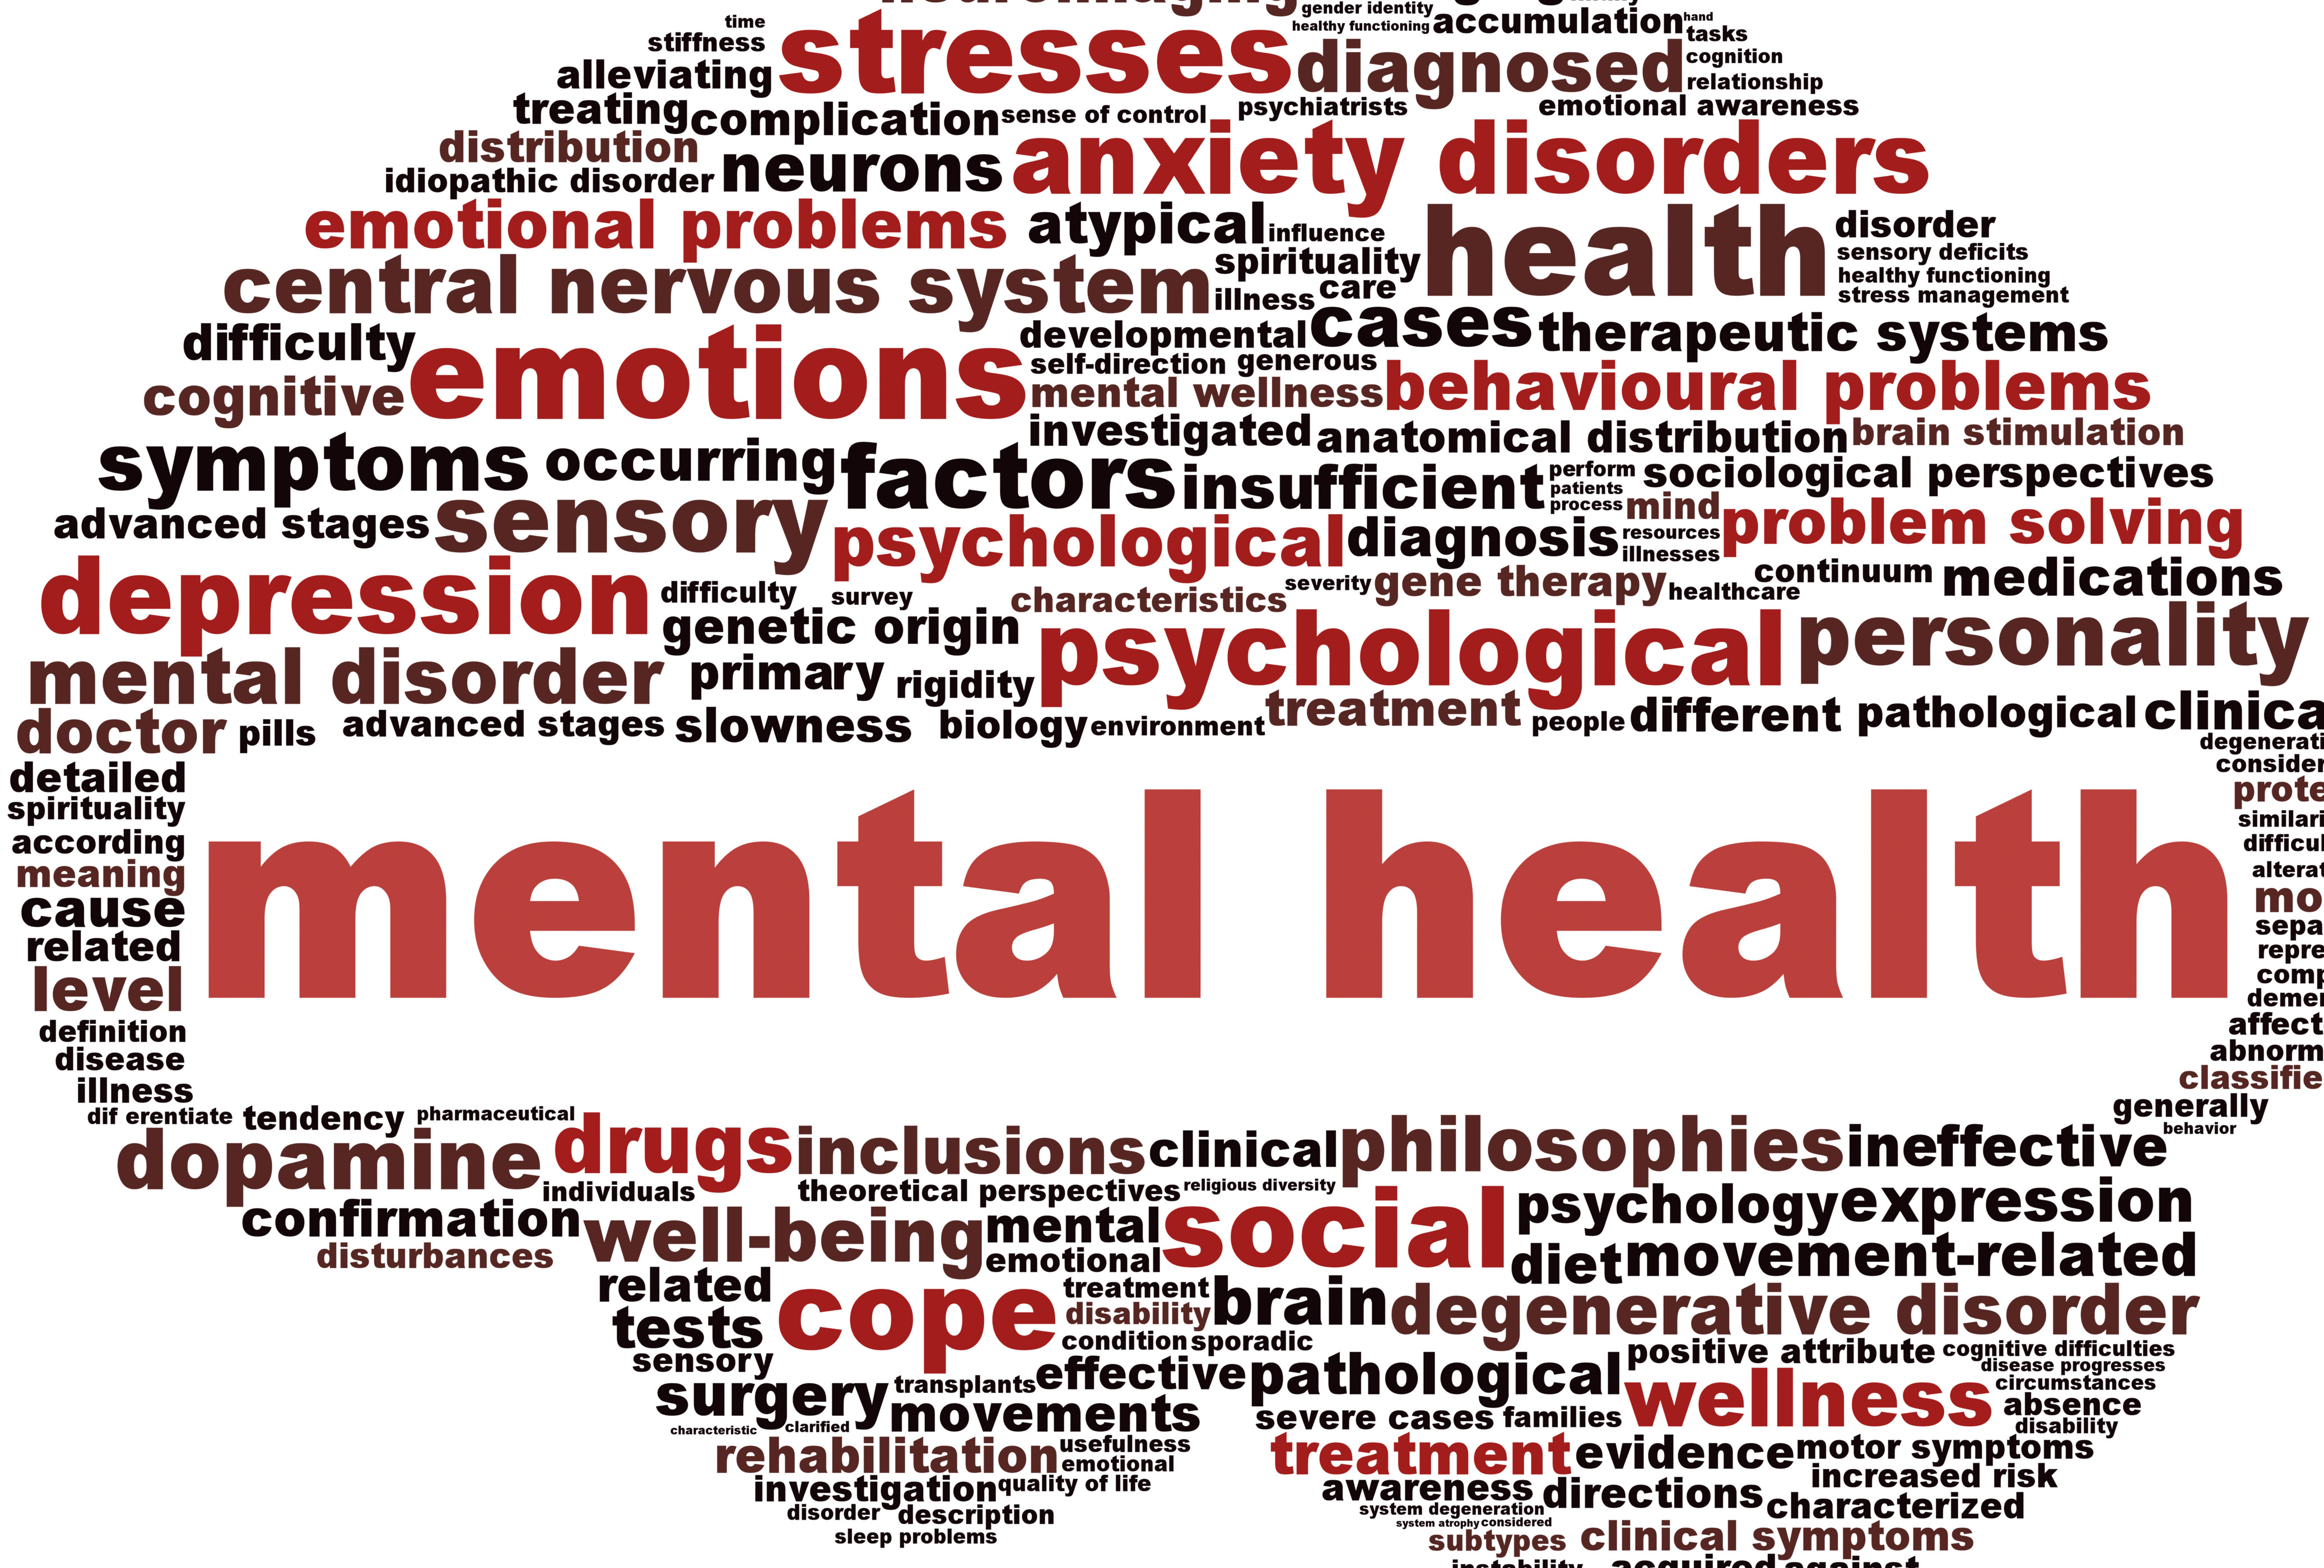 Previous Mental Illness Diagnosis And Other Health